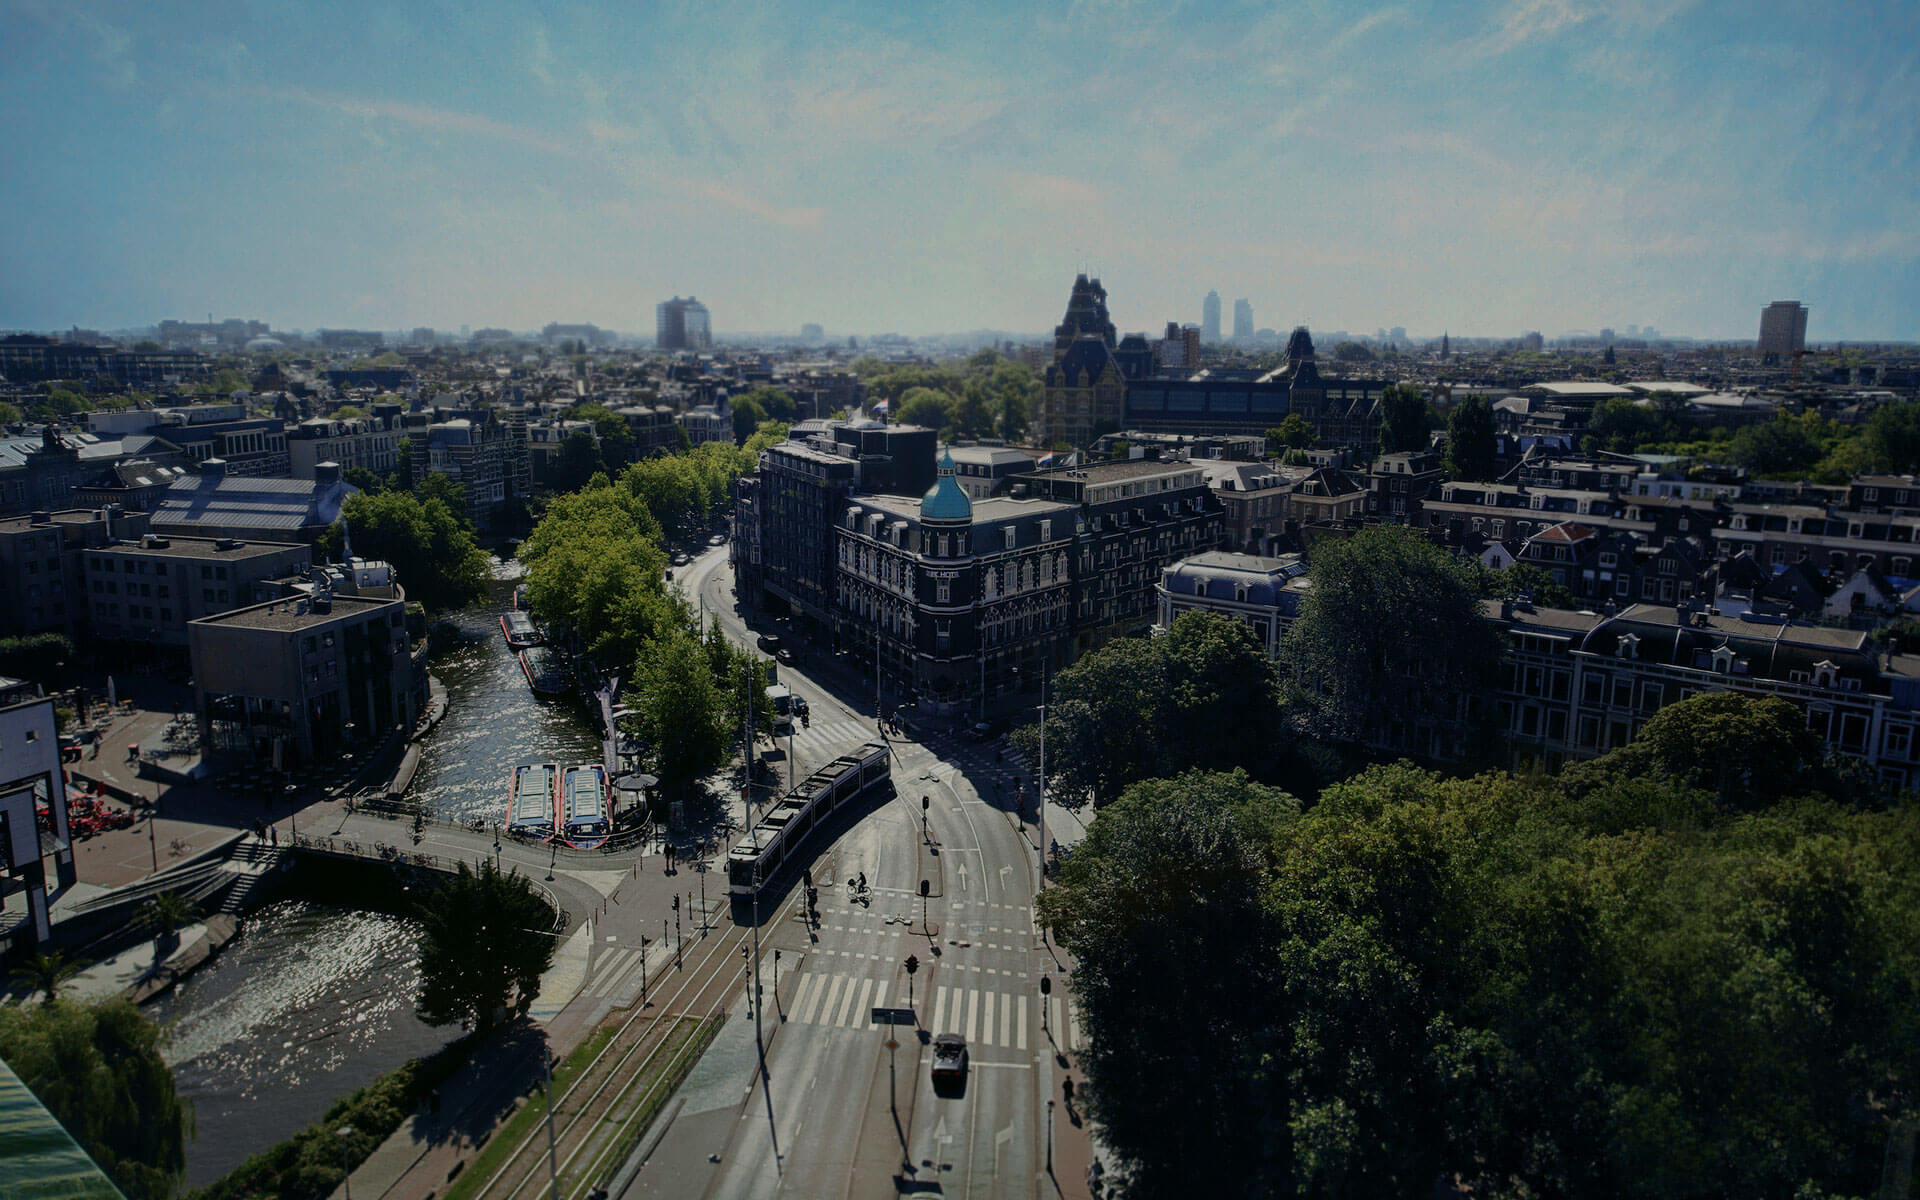 Park Hotel seen from above Central location in Amsterdam topview helicopter view